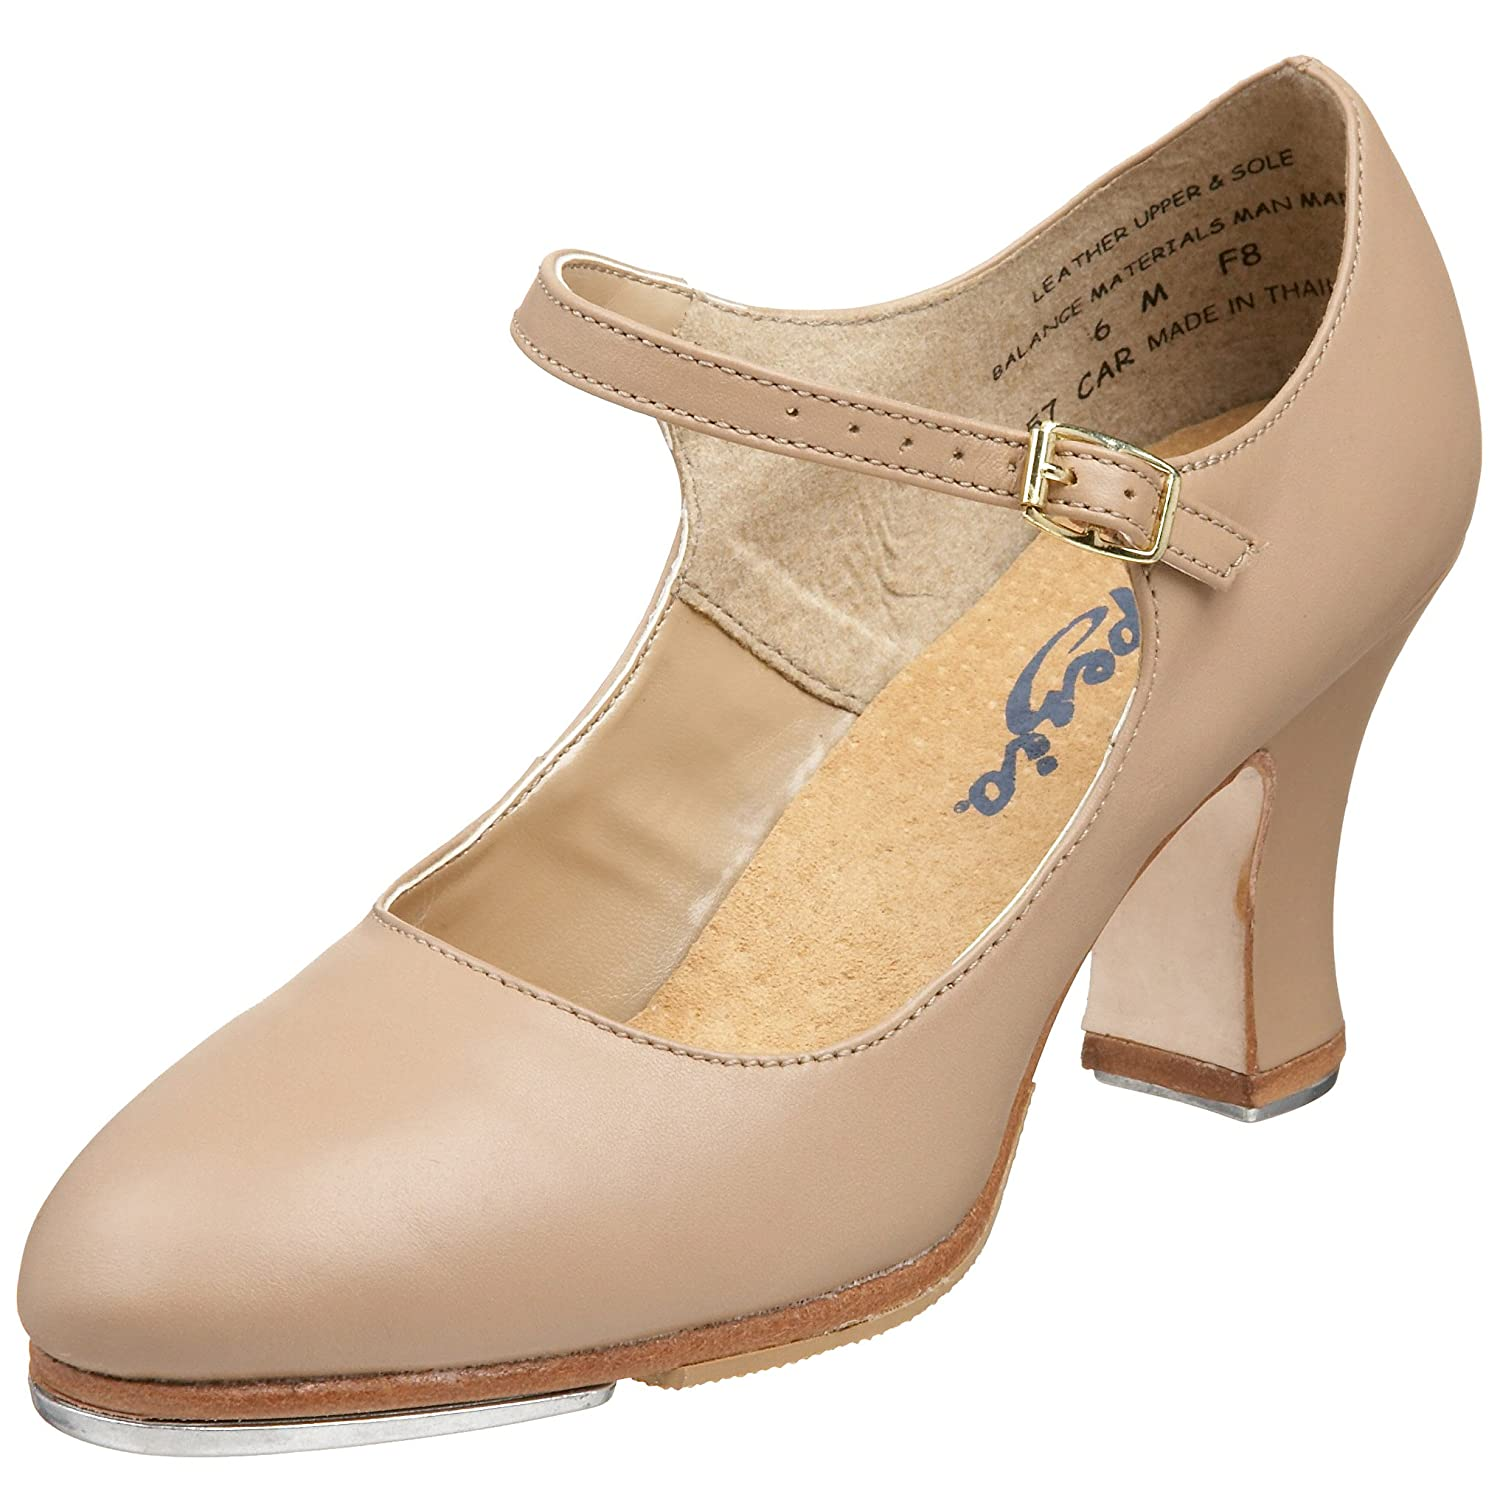 Swing Dance Shoes- Vintage, Lindy Hop, Tap, Ballroom Capezio Womens 657 Manhattan Xtreme Tap Shoe $82.95 AT vintagedancer.com